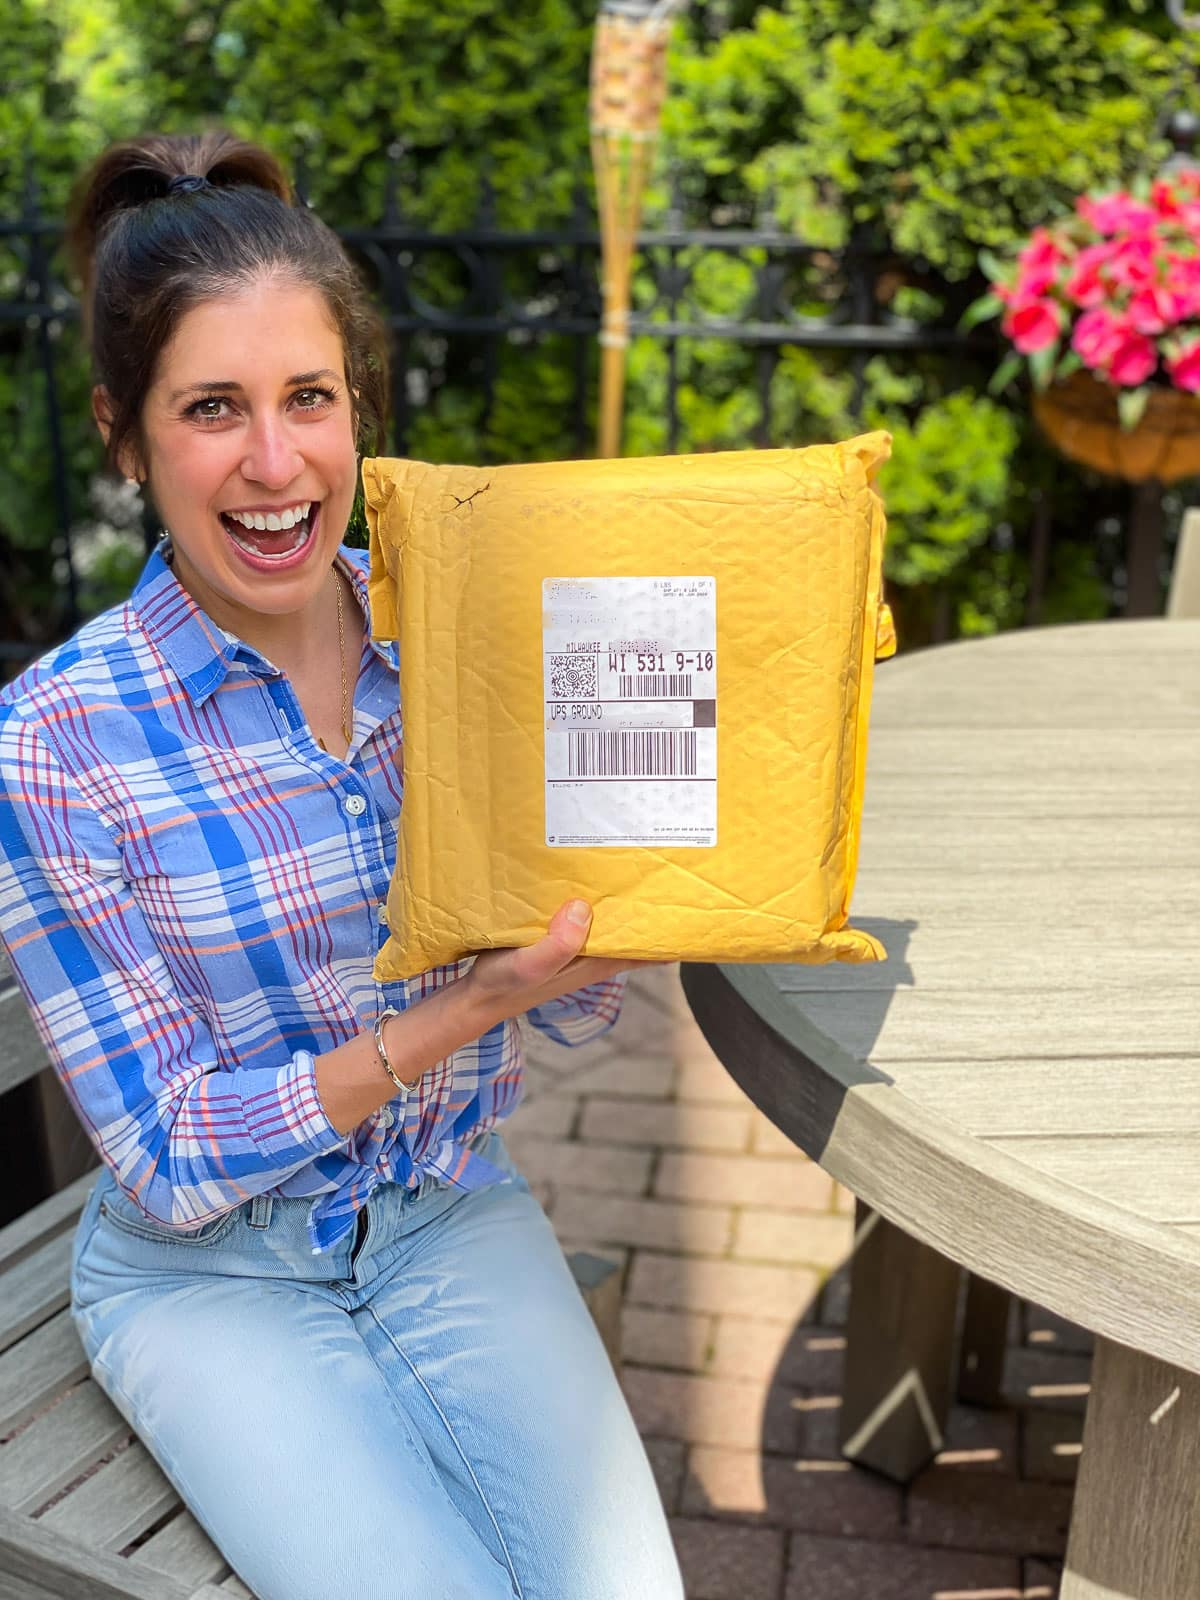 Erin Clarke holding package with cookbook